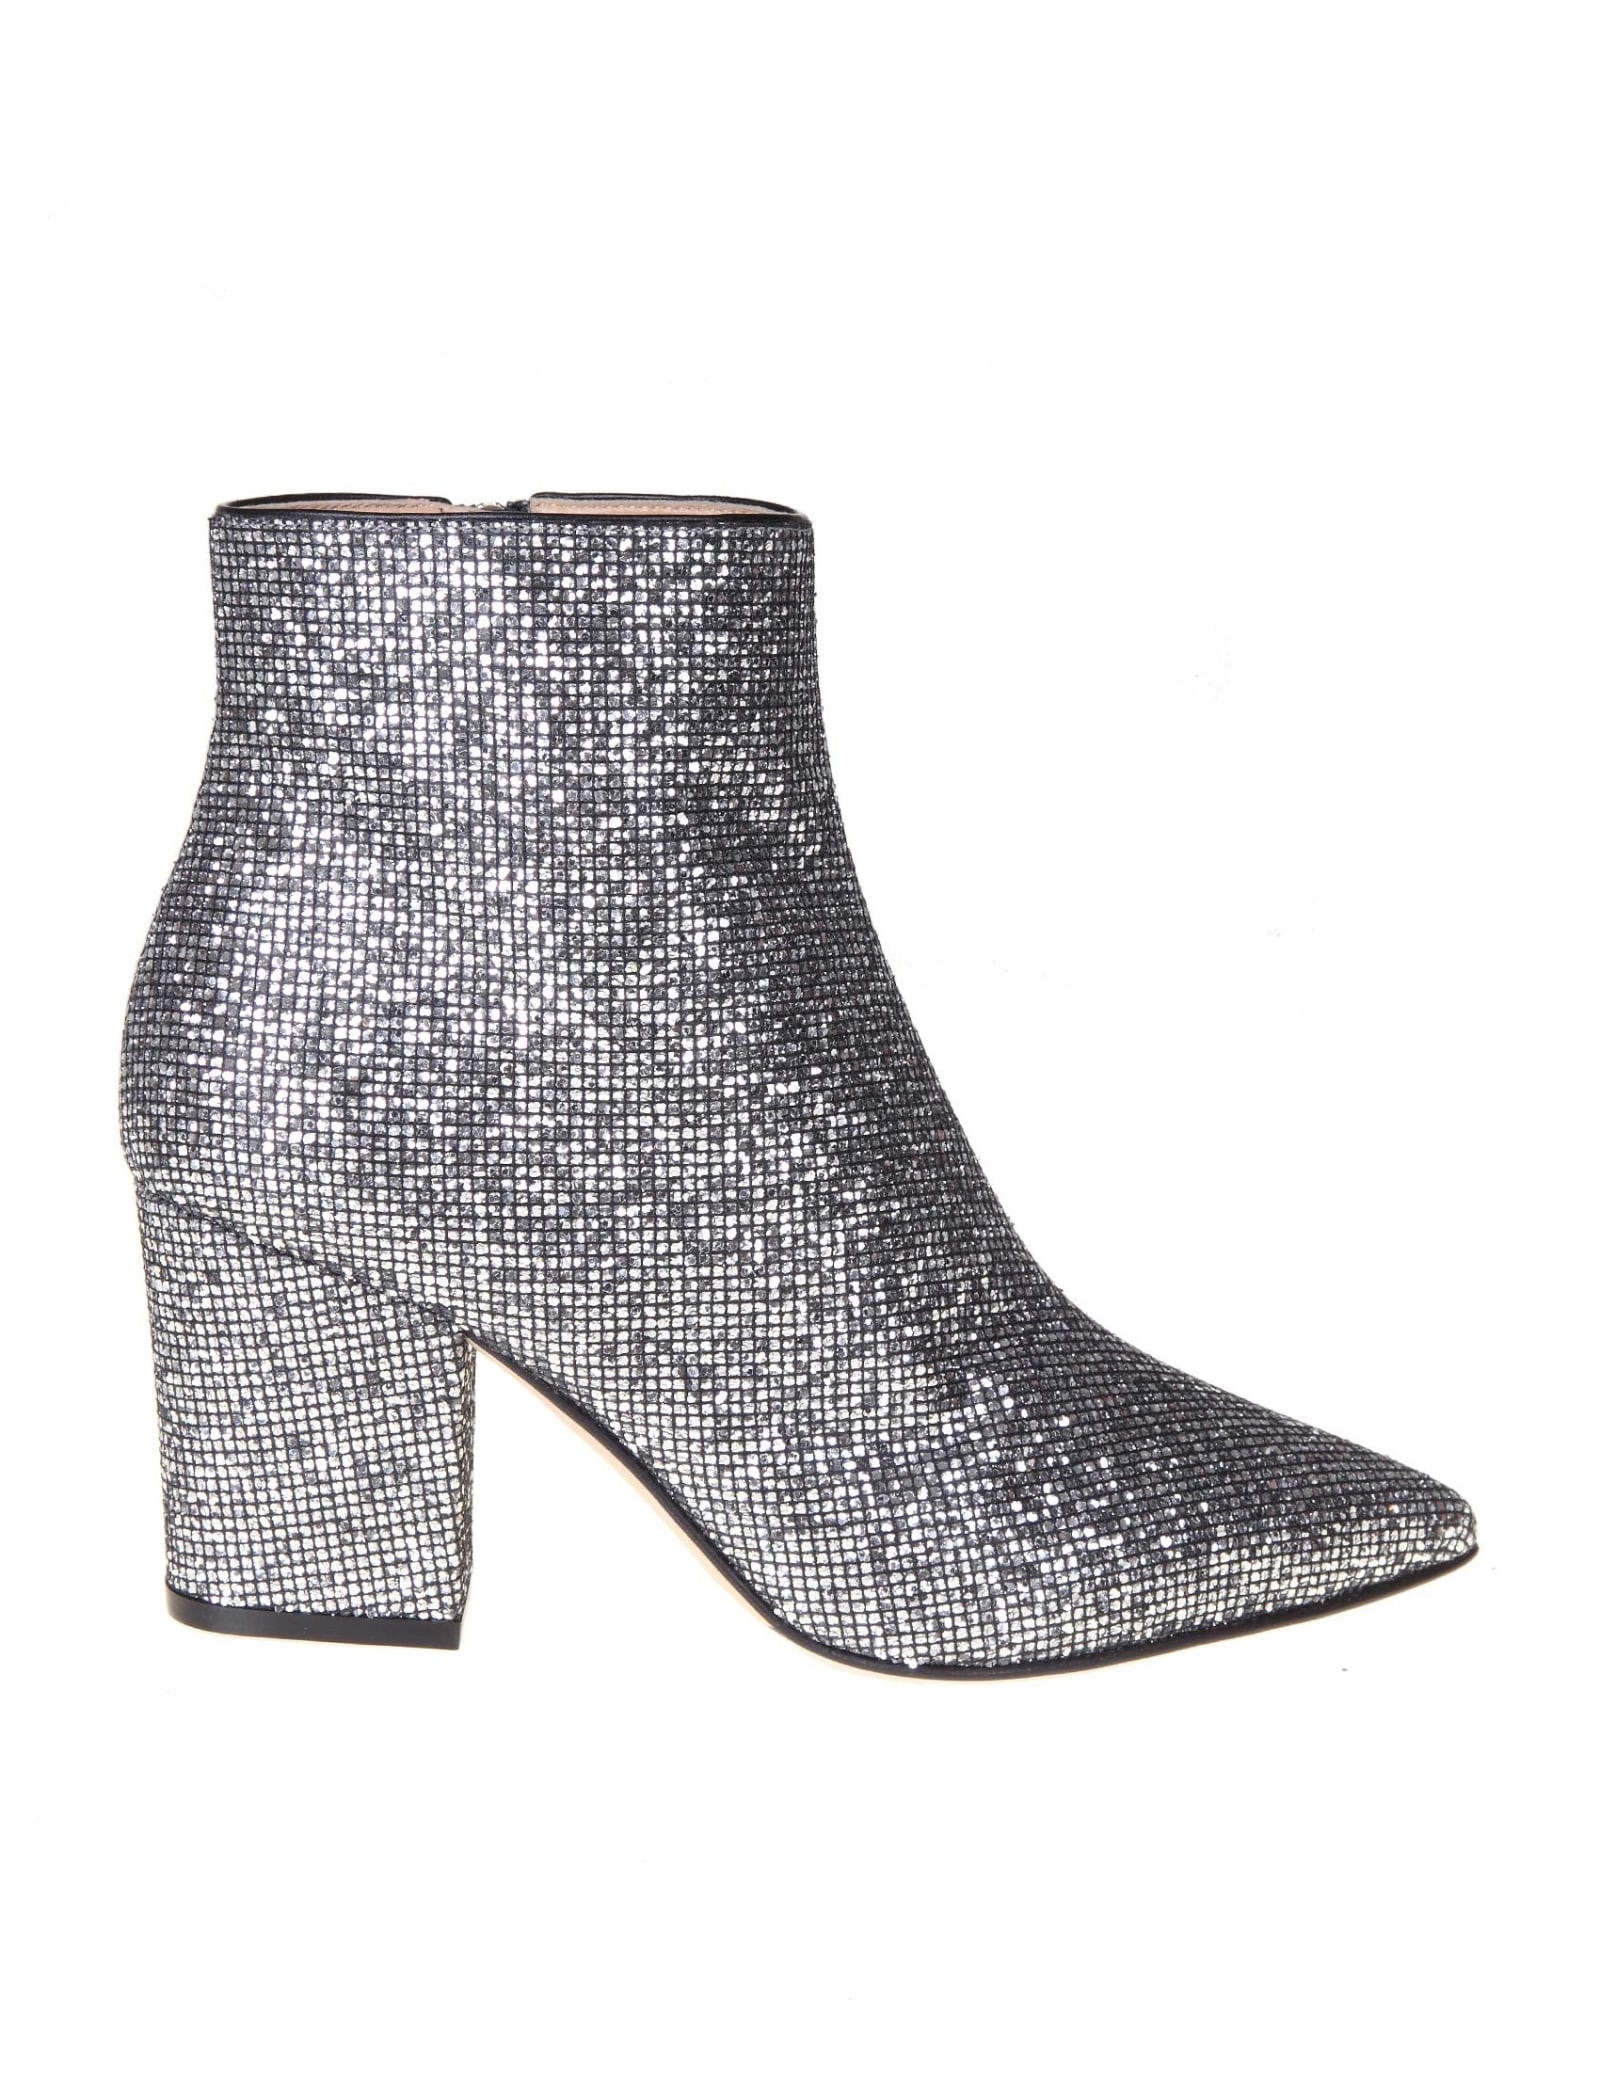 Sergio Rossi STEEL COLOR GLITTER FABRIC ANKLE BOOT